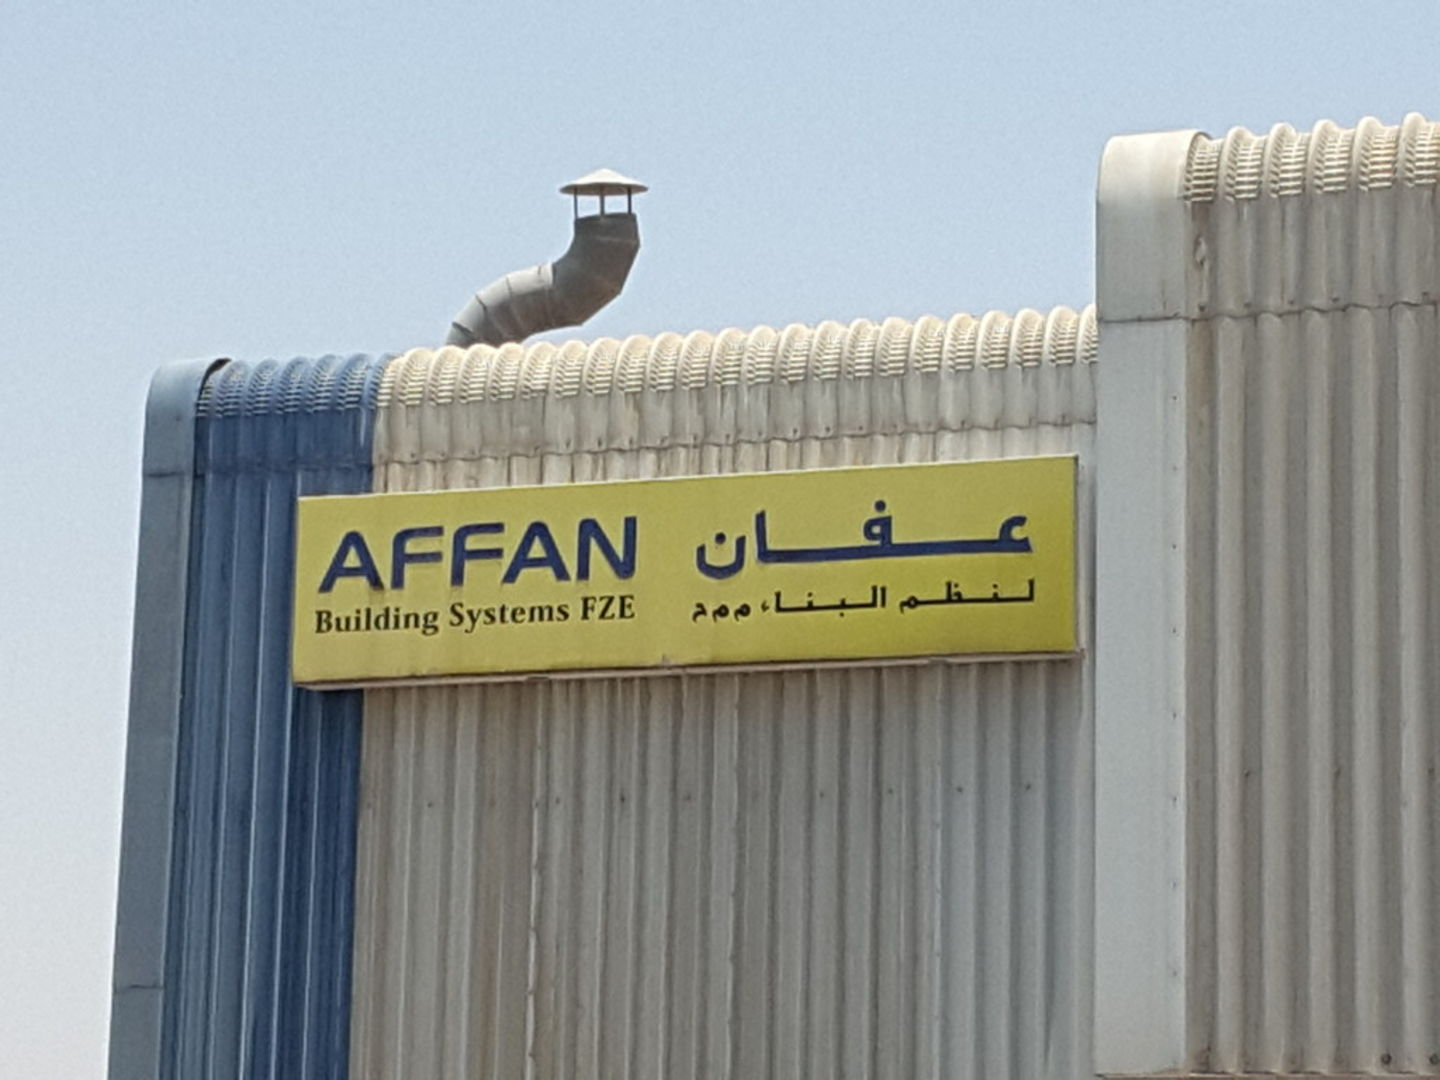 HiDubai-business-affan-building-systems-b2b-services-construction-building-material-trading-jebel-ali-free-zone-mena-jebel-ali-dubai-2